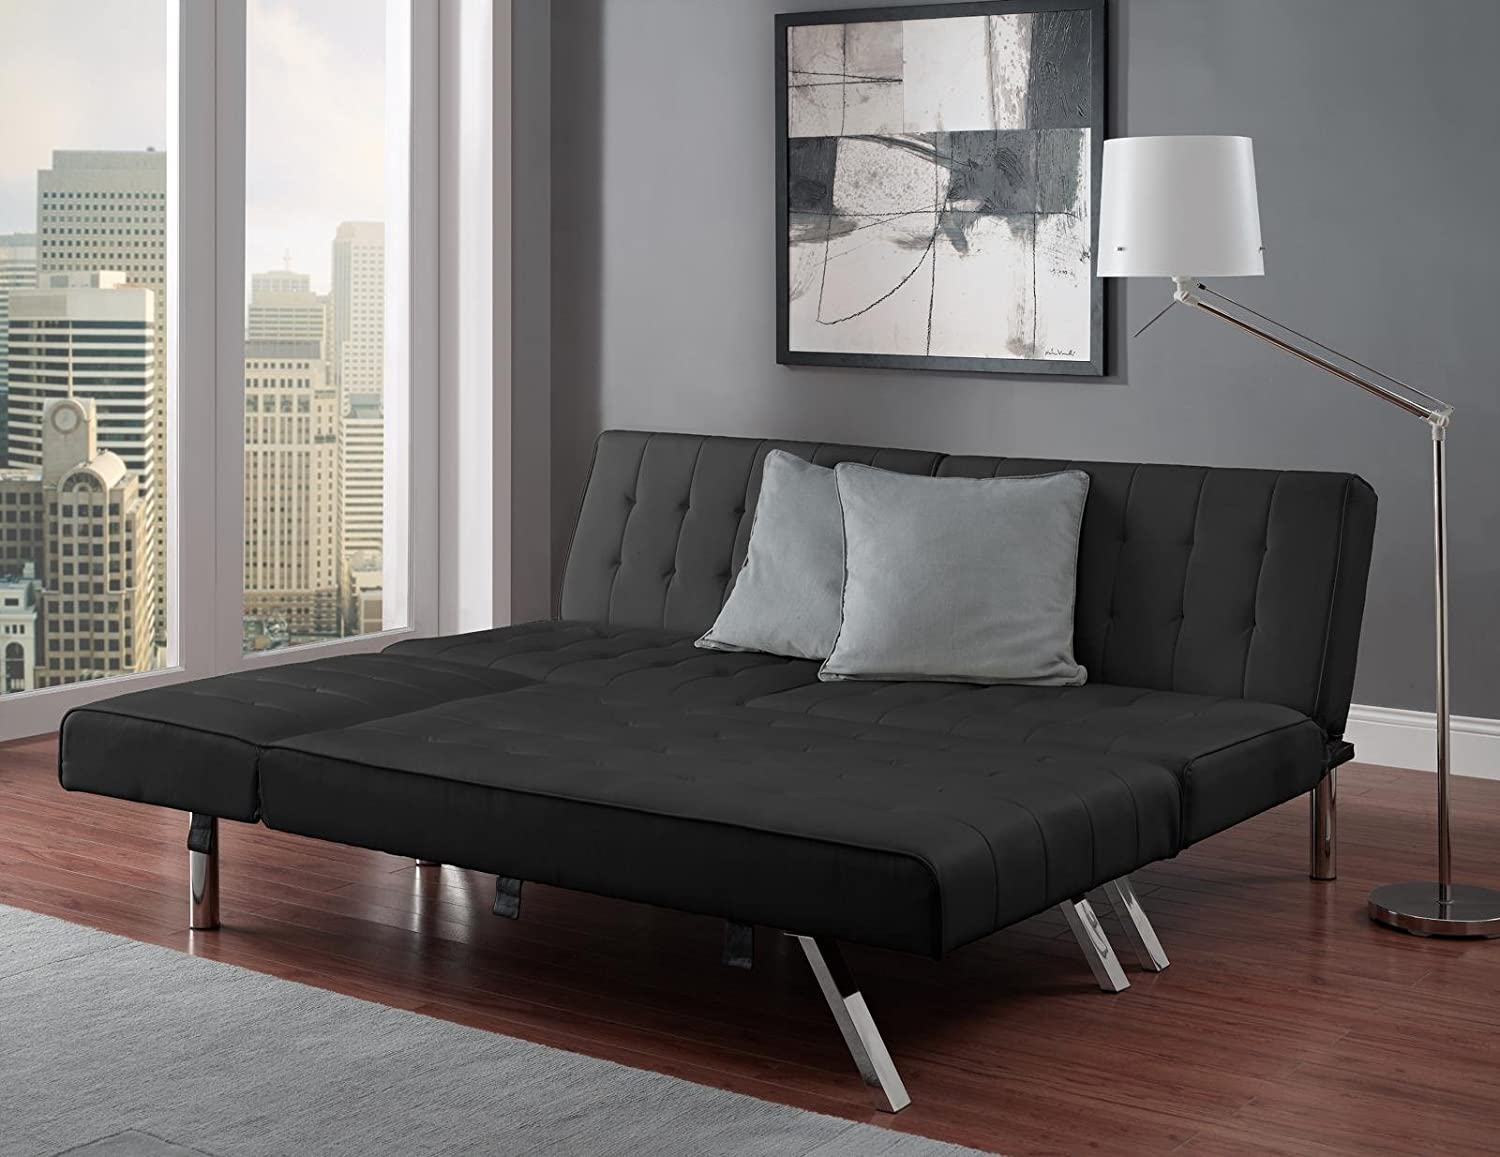 lounge futon suppliers bed leather french wholesale alibaba showroom black sofa couch modern